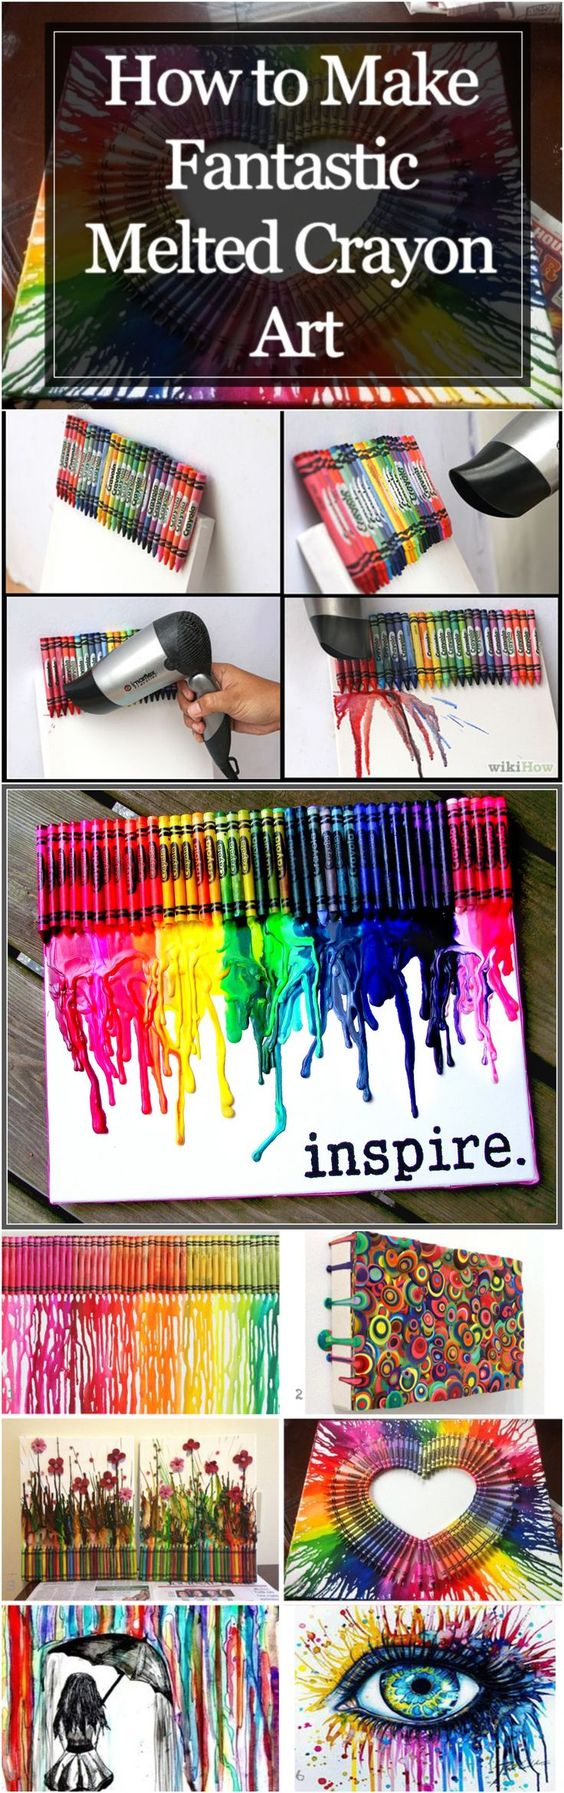 How to Make Fantastic Melted Crayon Art. HOLY!! This is so cool! Would be great to brighten a room